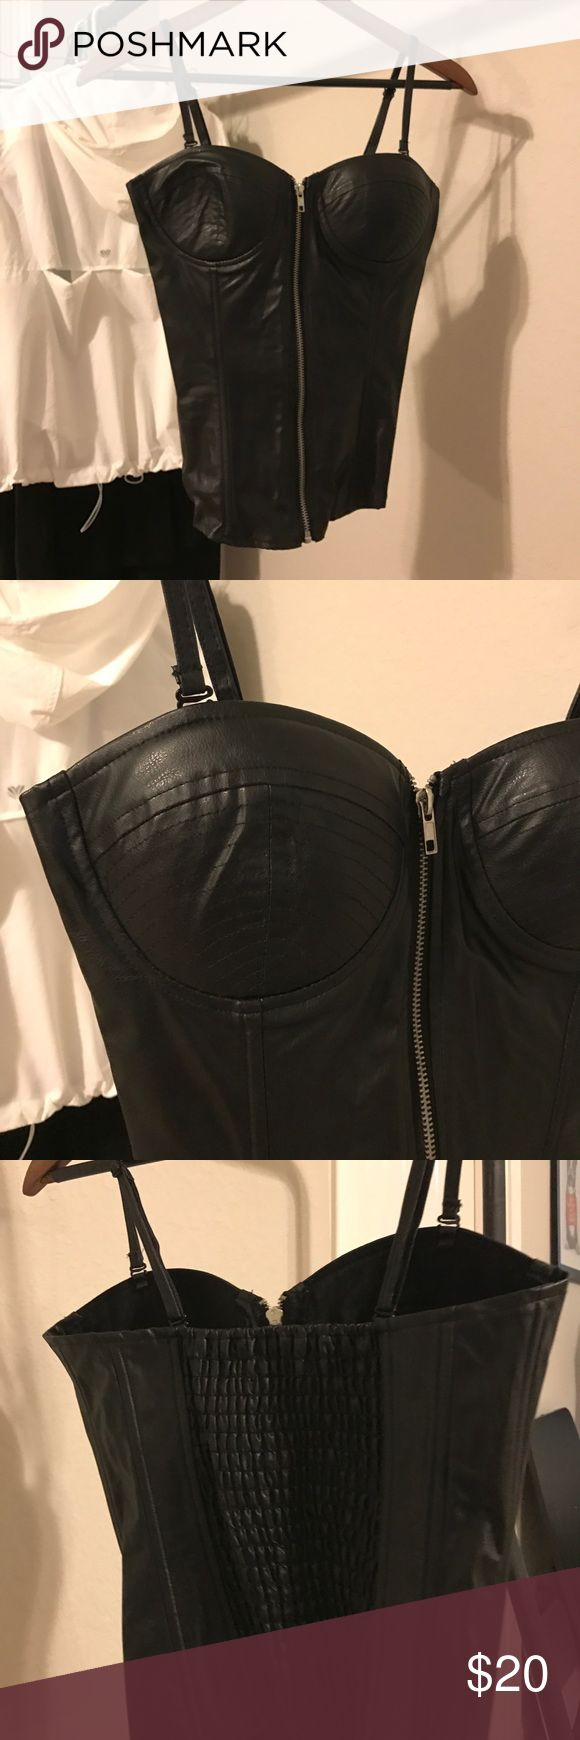 Sexy Leather Corset Blouse Never worn. A sexy staple to add to your wardrobe! Tops